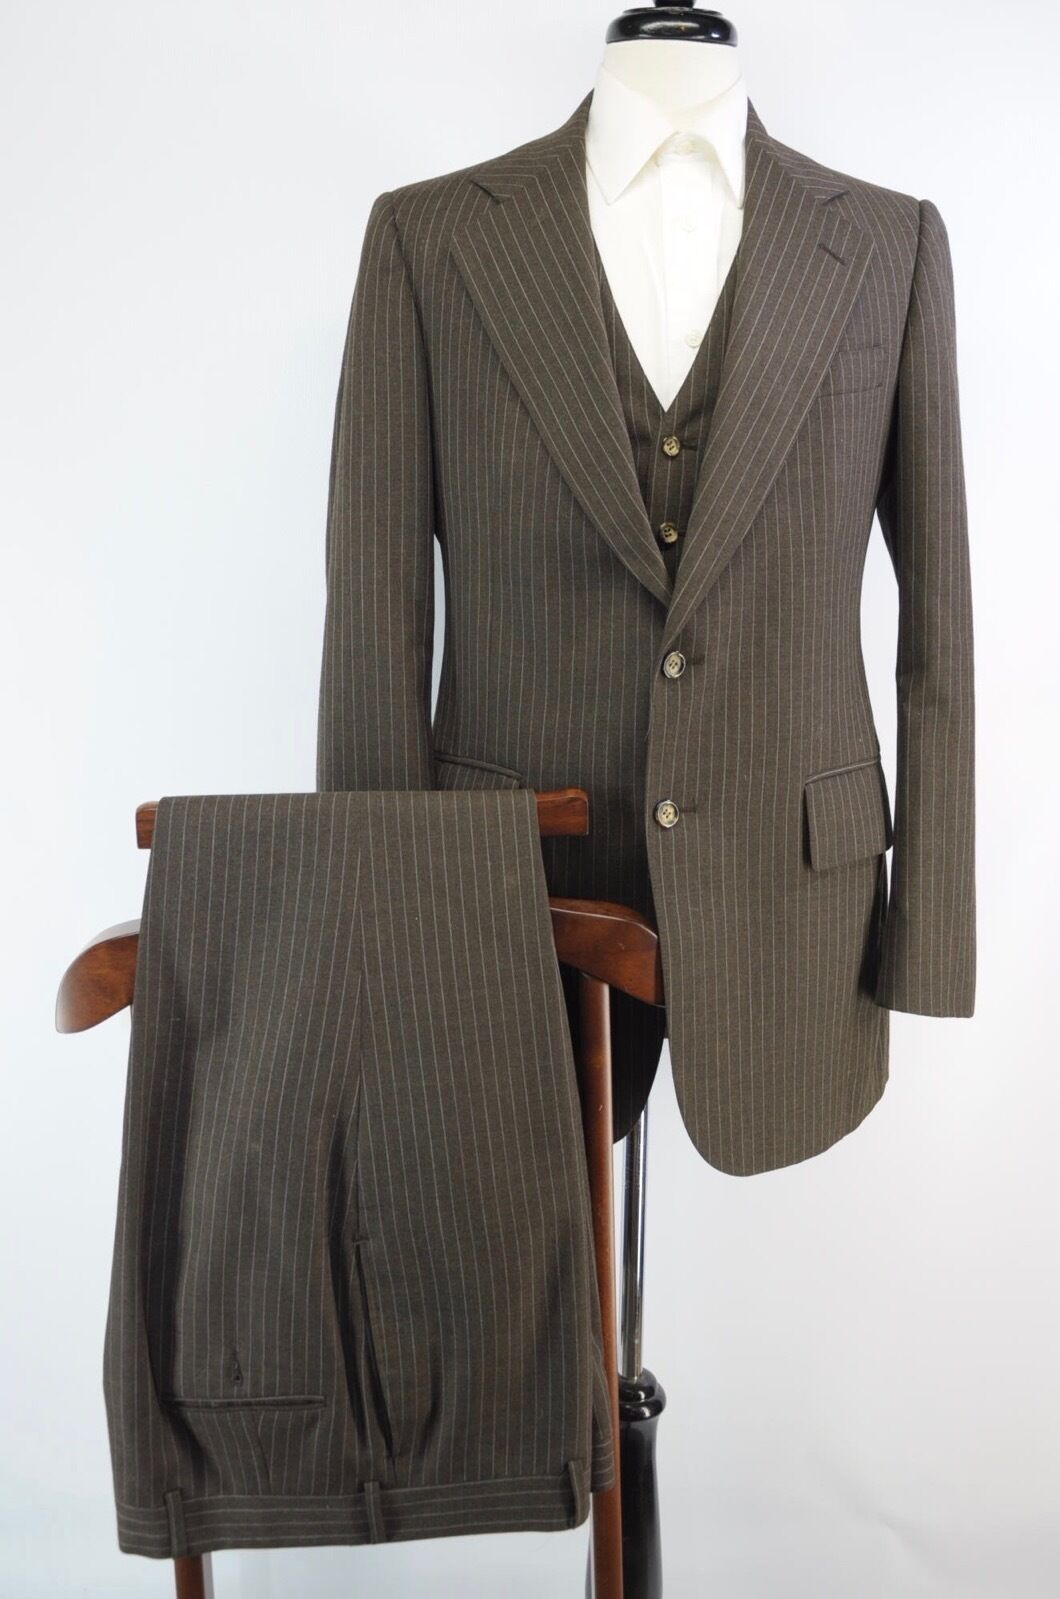 Vintage 3 Piece Chocolate Braun Pinstripe Wool Suit Made in USA 39L 33W 34L